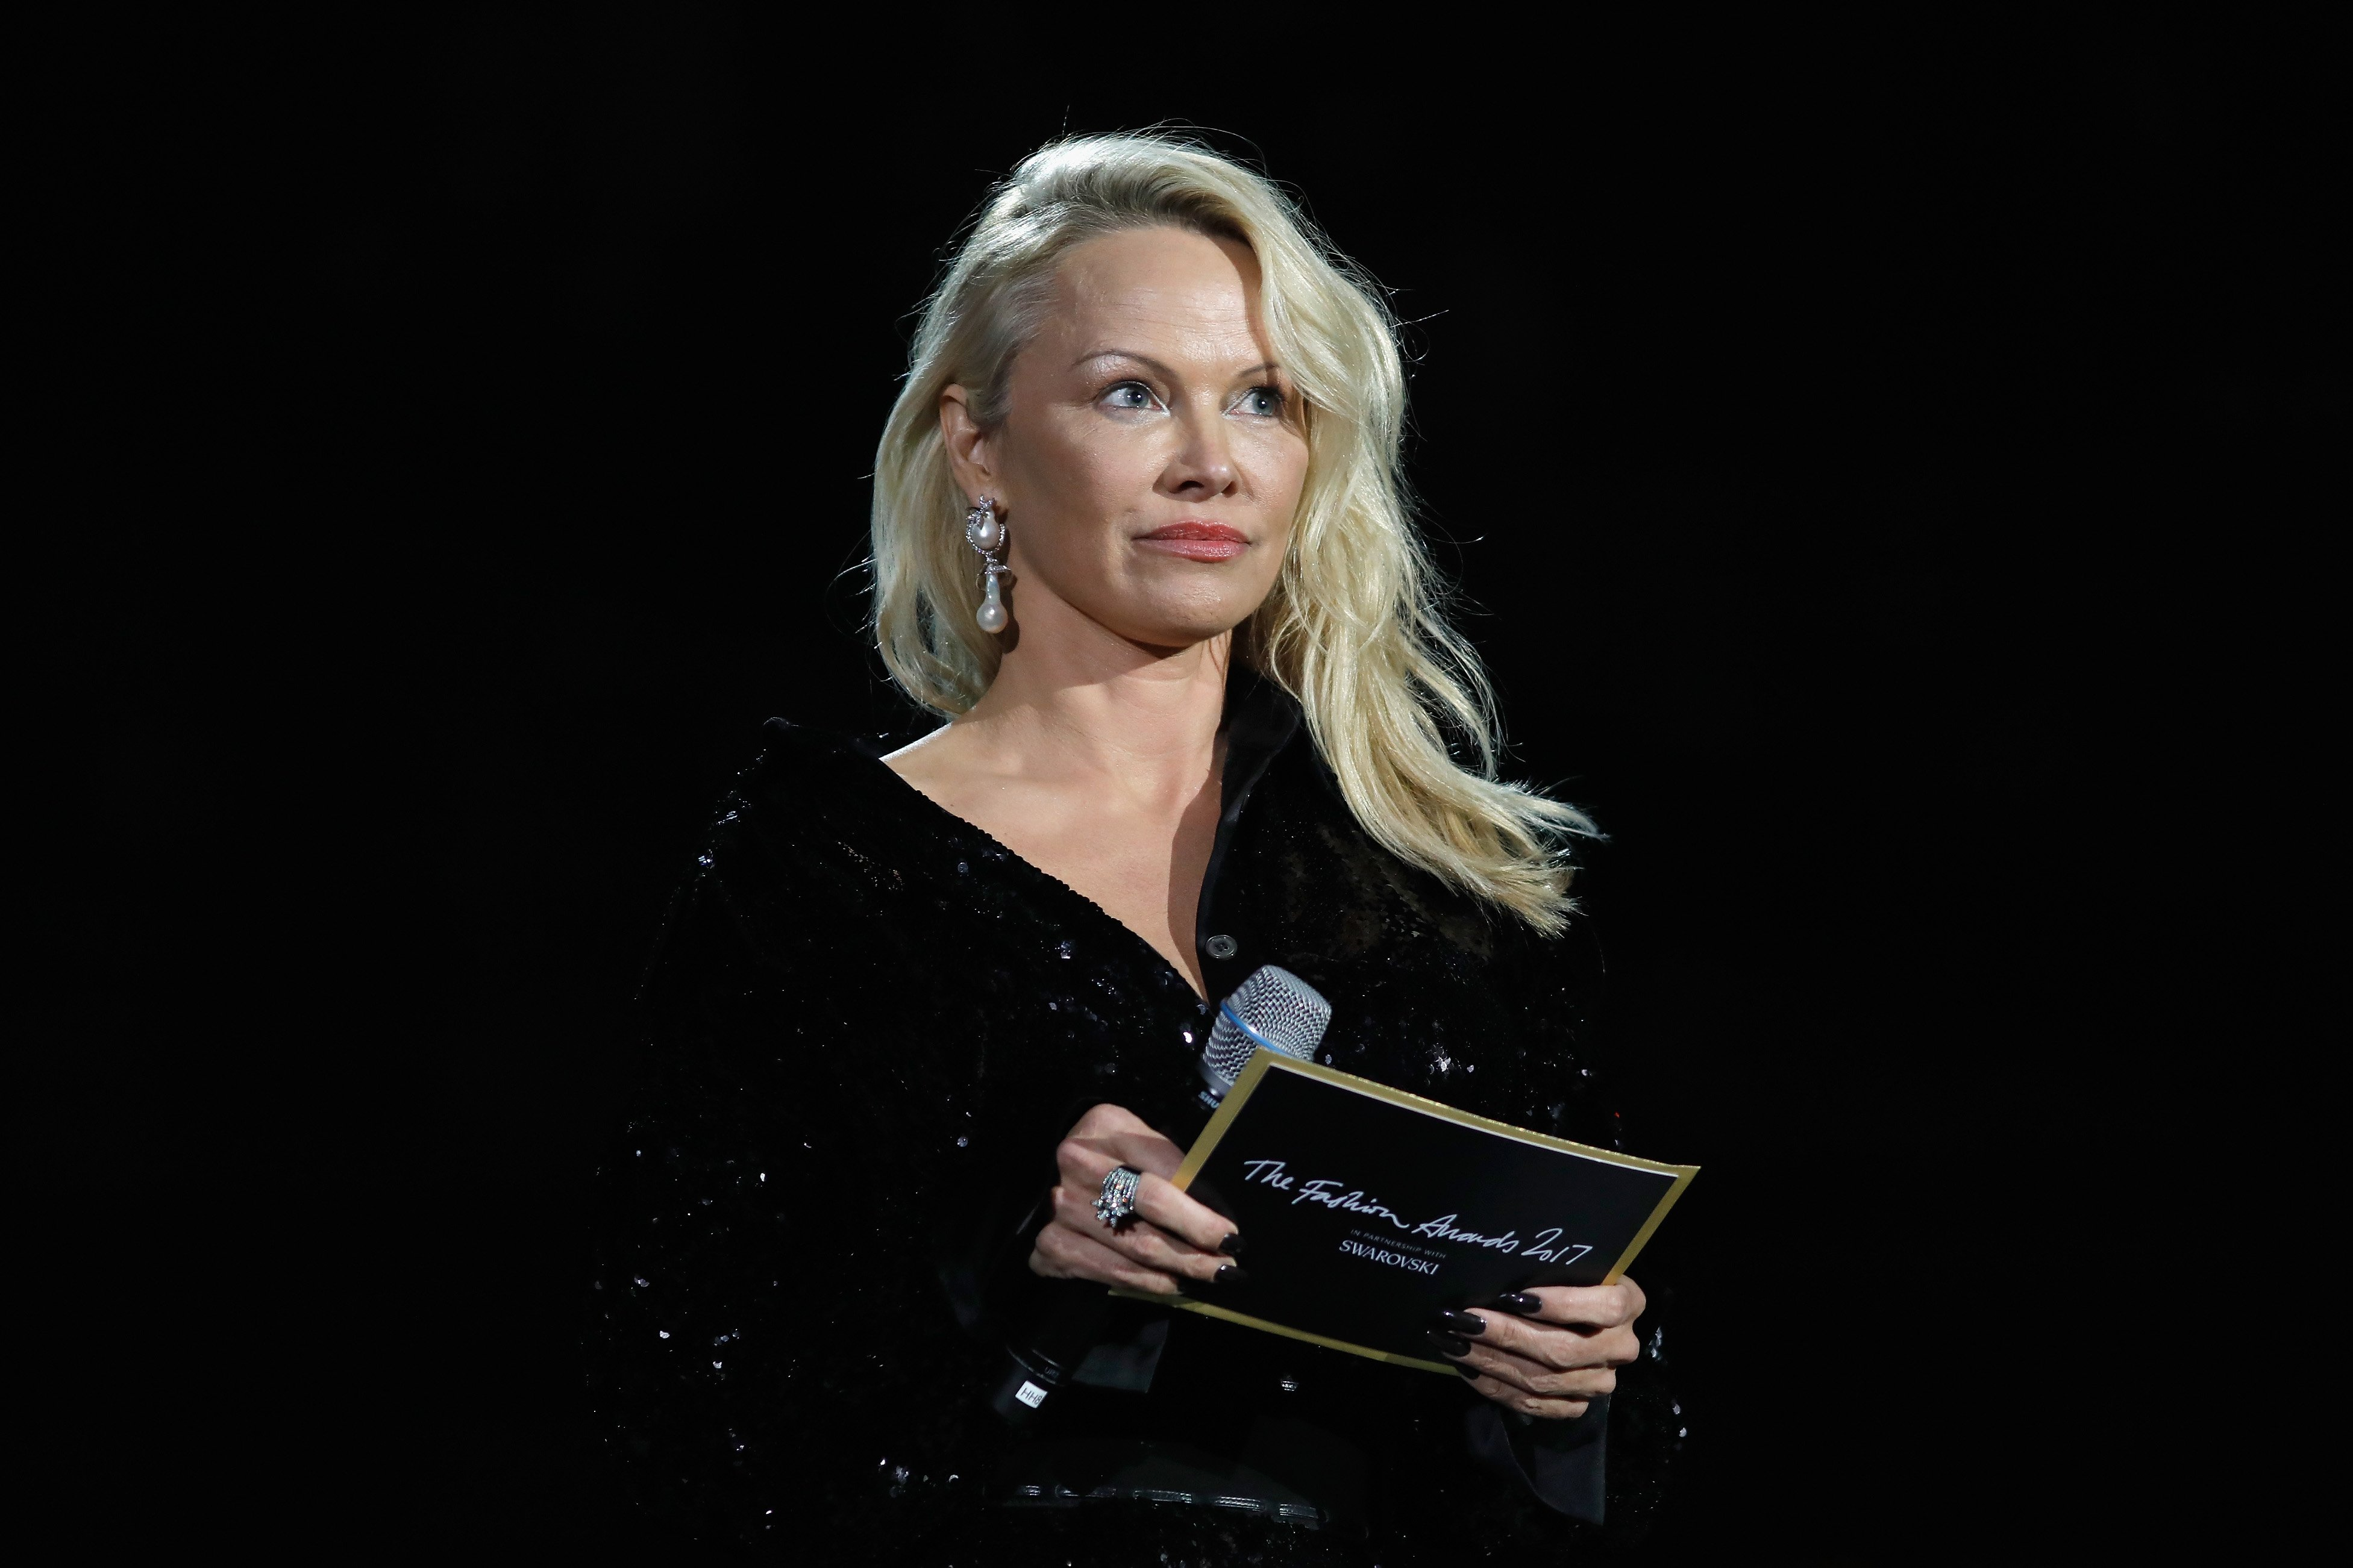 Pamela Anderson presenting an award during The Fashion Awards 2017 at the Royal Albert Hall in London, England | Photo: Tristan Fewings/BFC/Getty Images for BFC